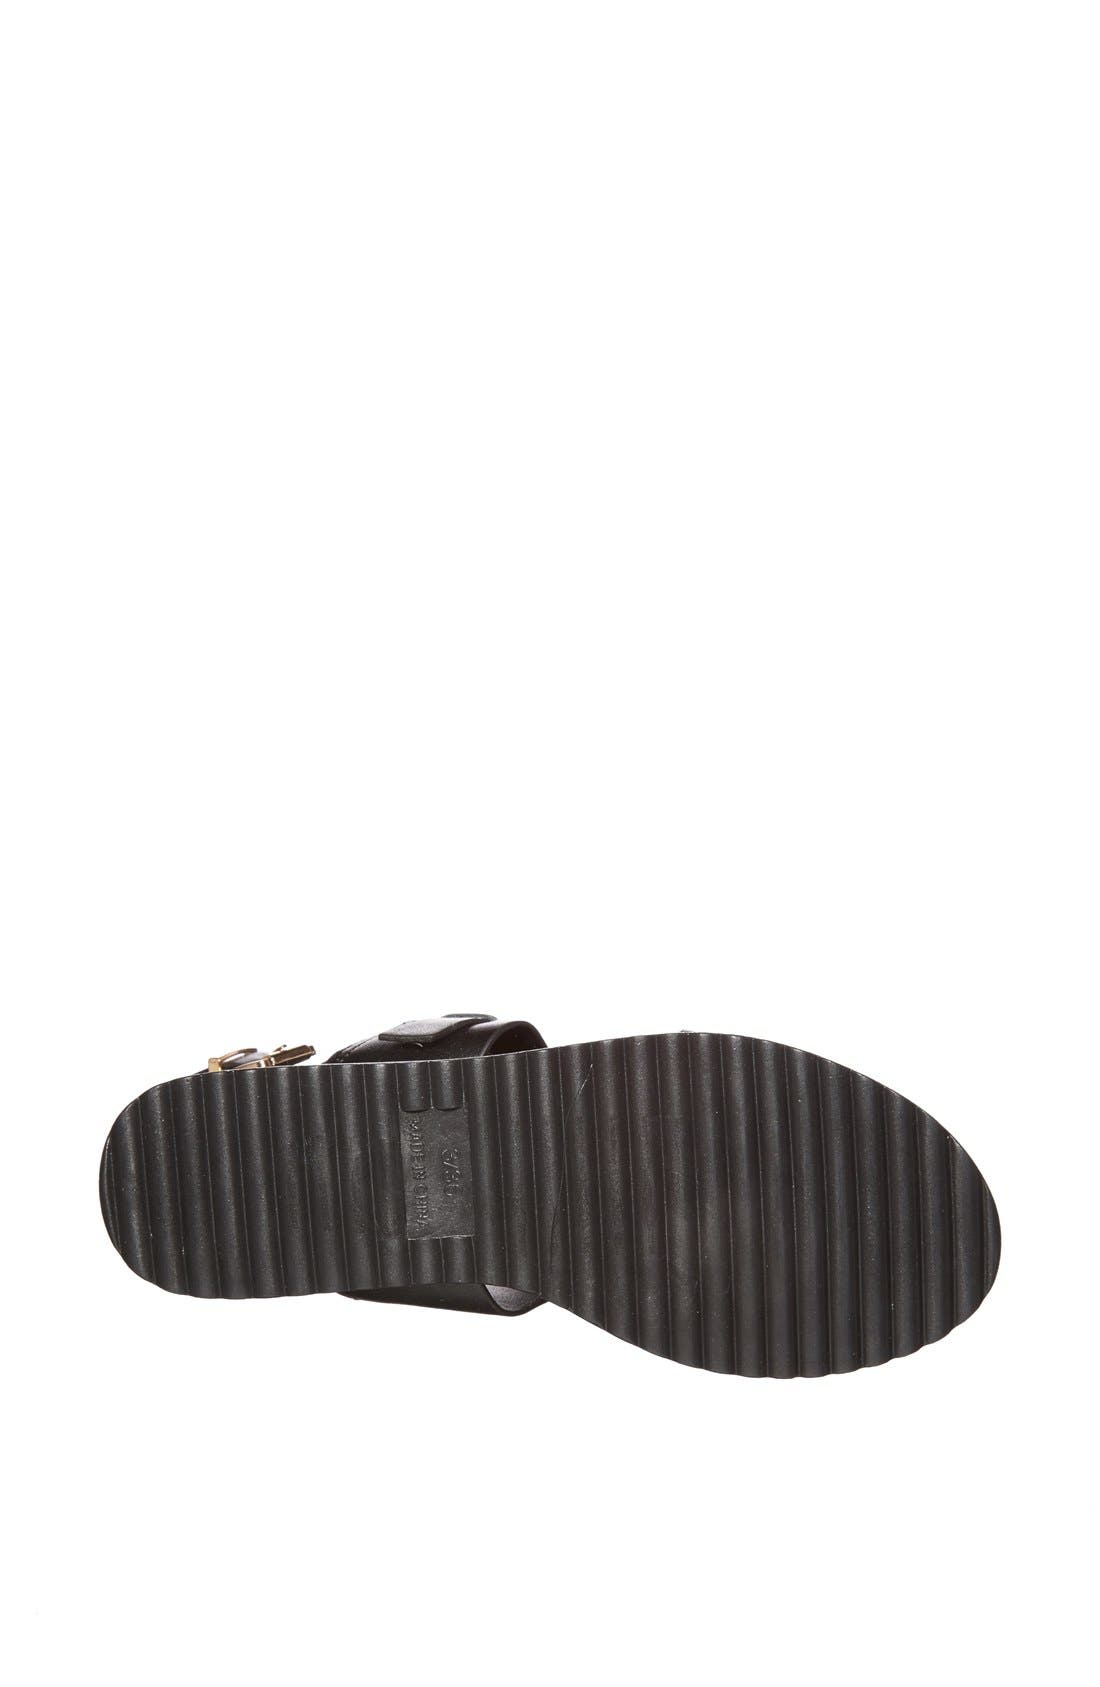 Alternate Image 4  - Topshop 'Hydrate' Faux Leather Sandals